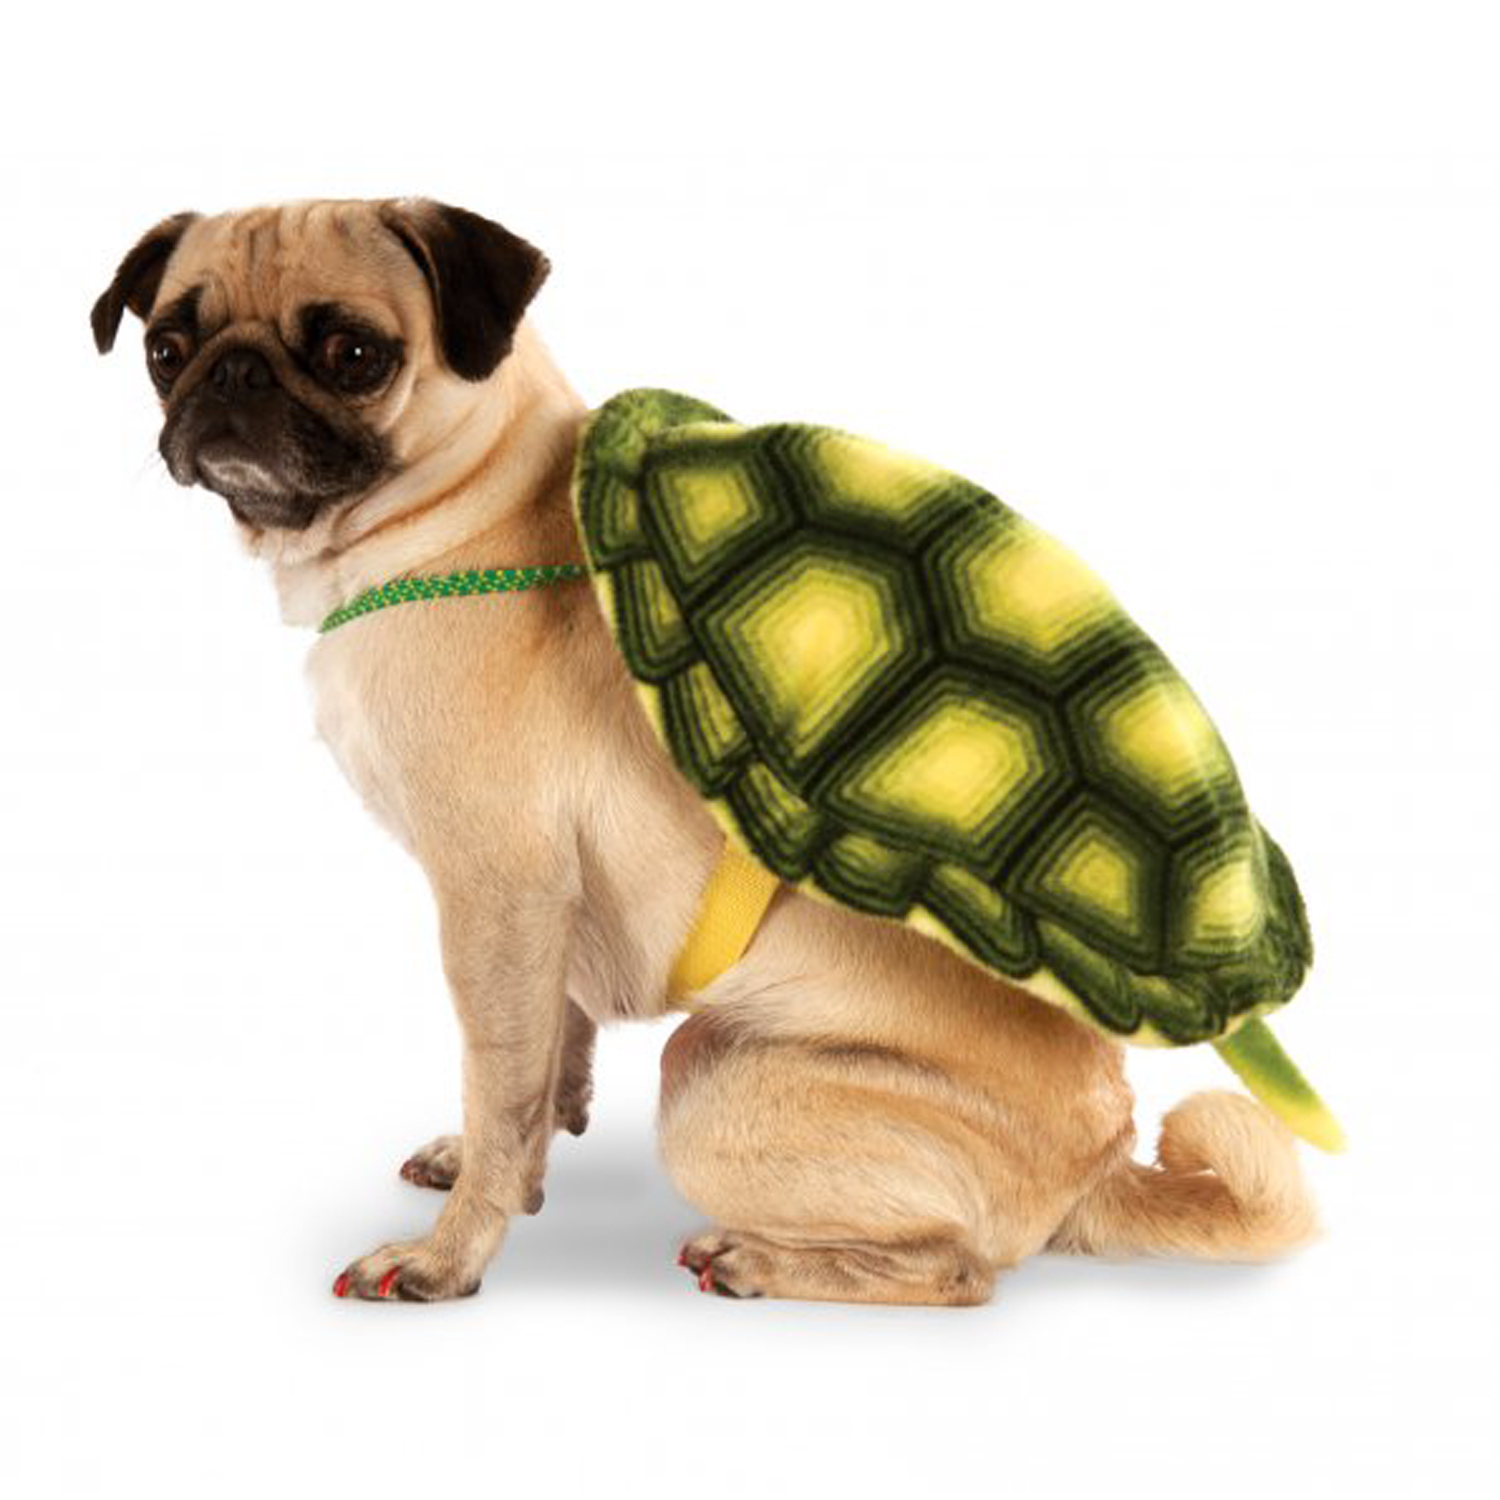 Turtle Shell Backpack Dog Costume  sc 1 st  BaxterBoo & Animal Dog Costumes | BaxterBoo